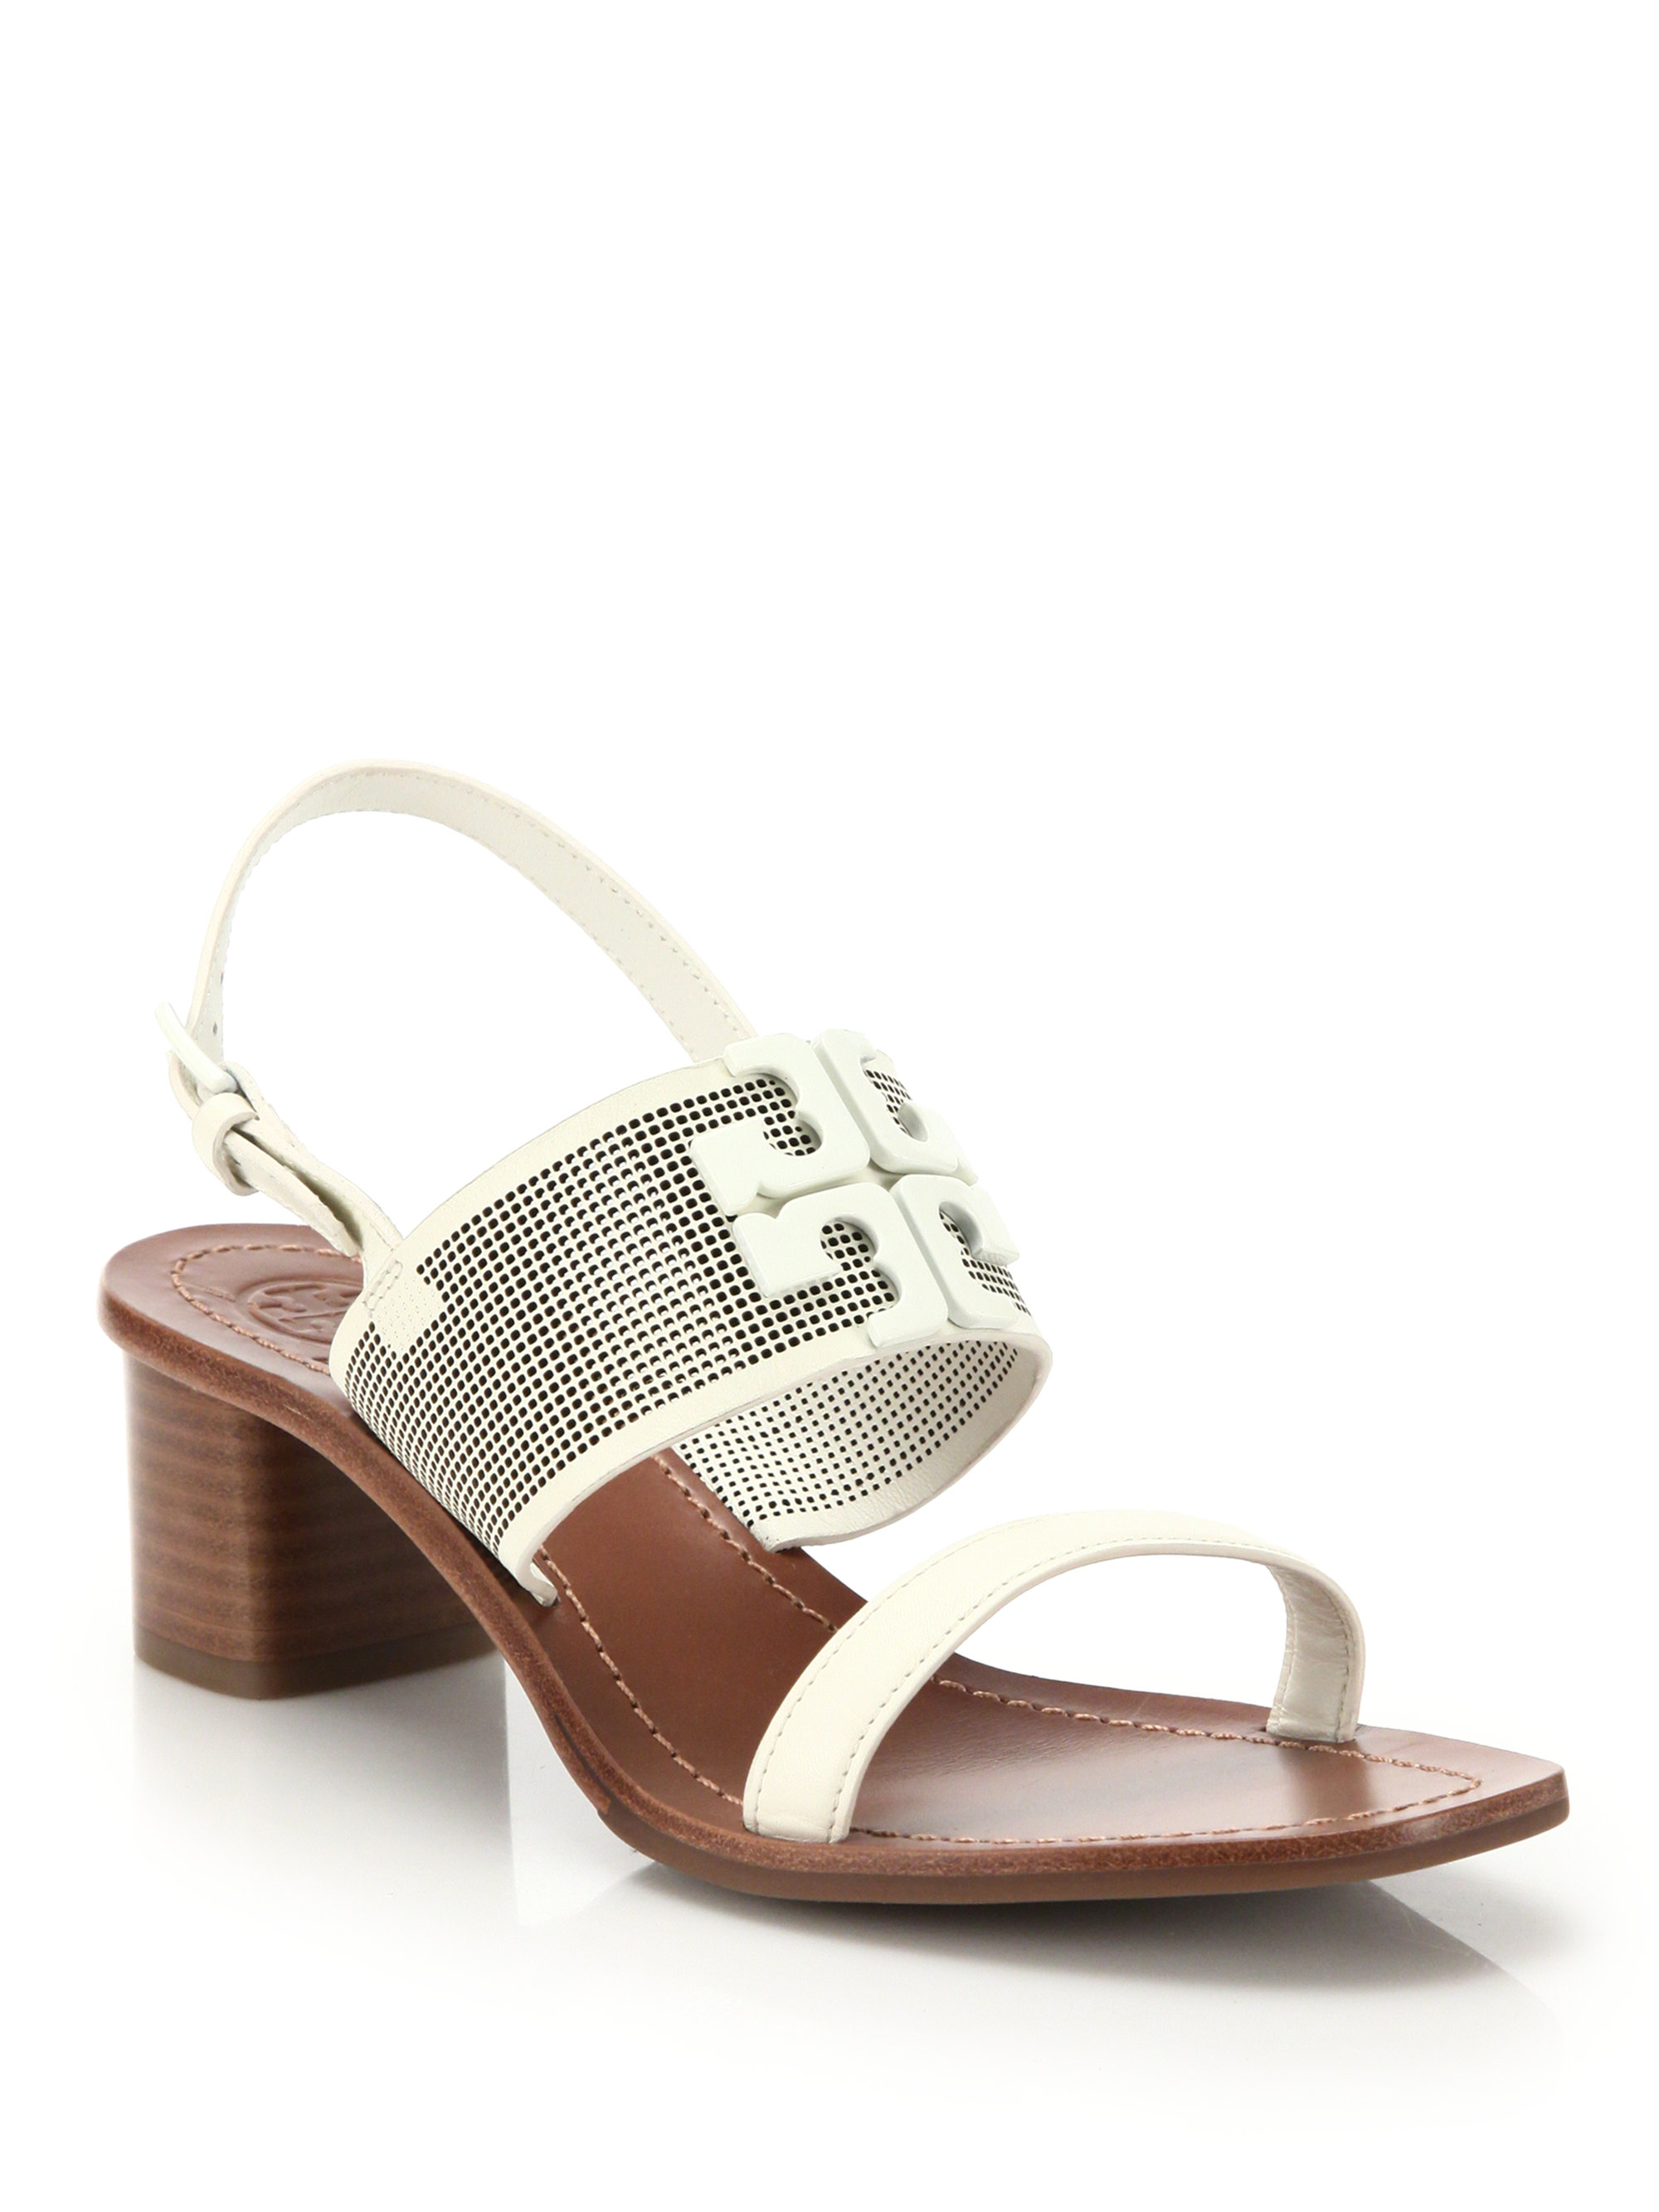 Tory Burch Women's Lowell Perforated